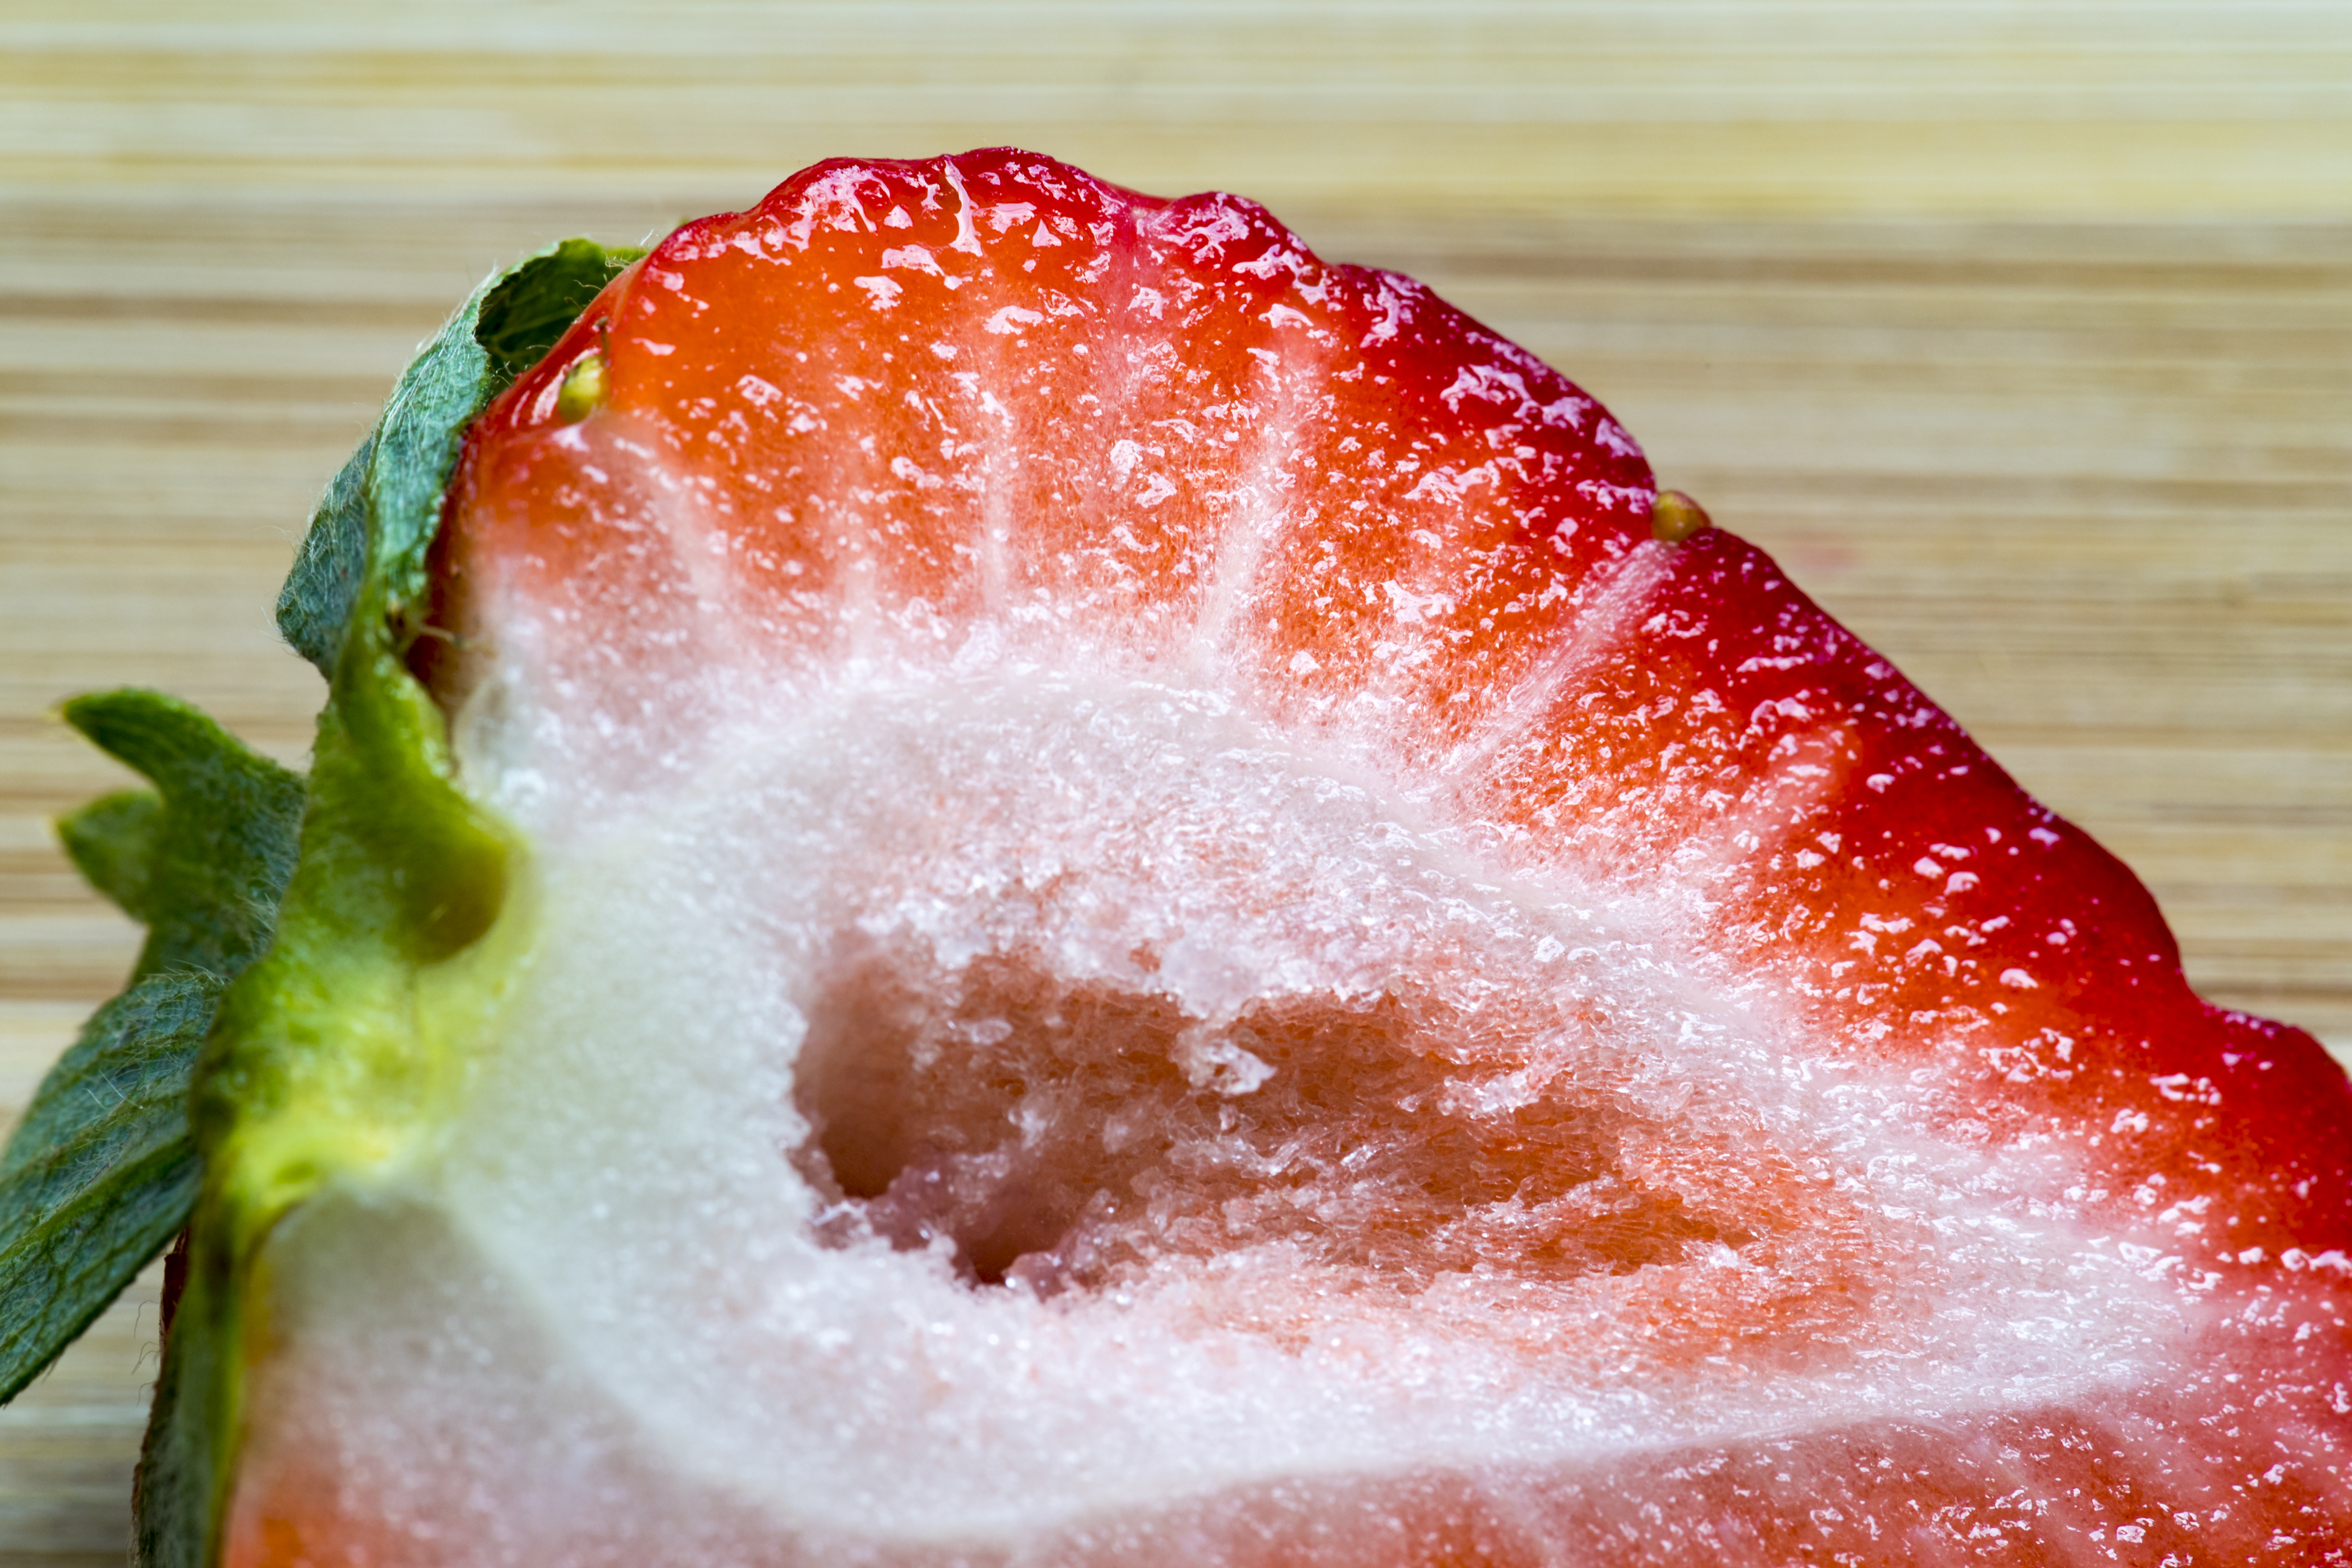 Strawberry close up: Fruit cut in half. The garden